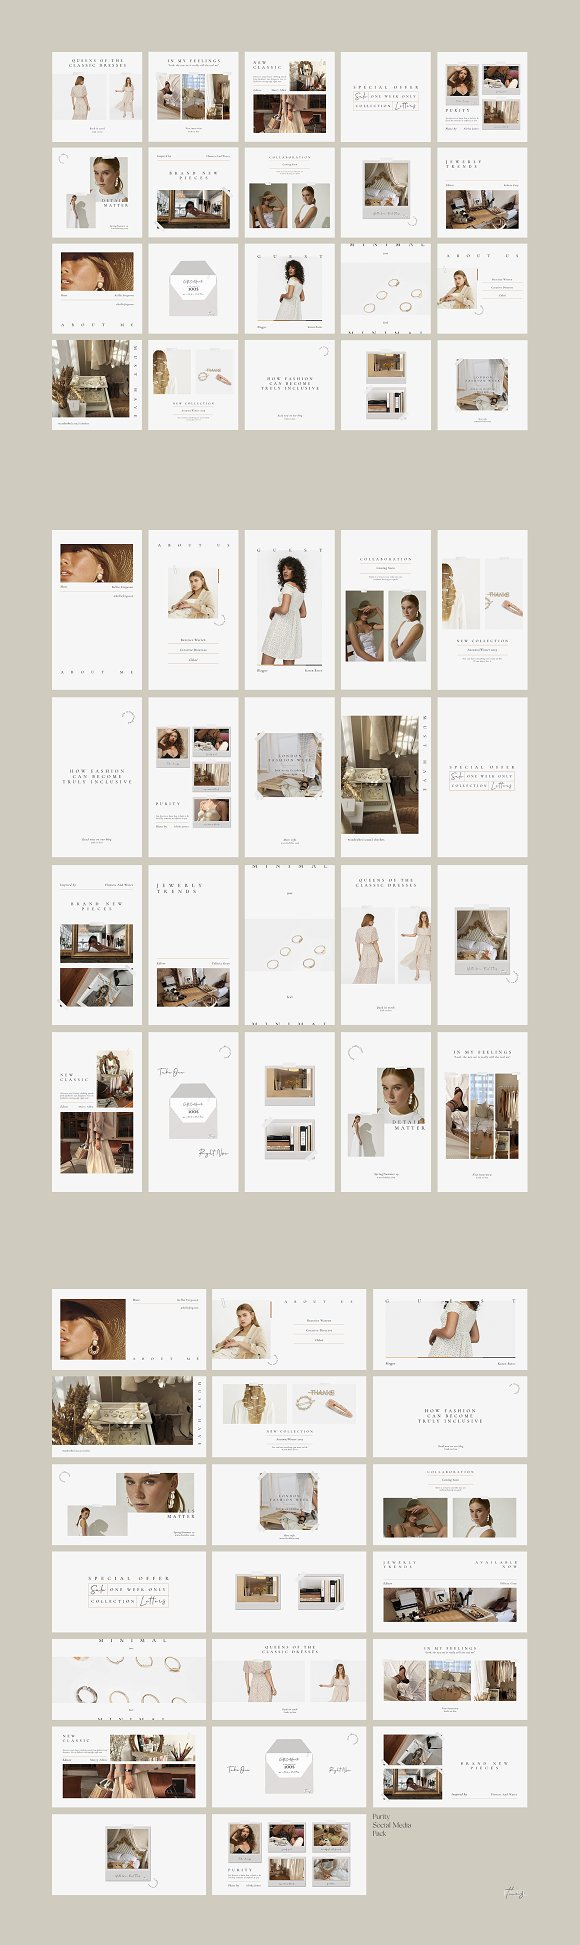 Purity Social Media Pack in Instagram Templates - product preview 13